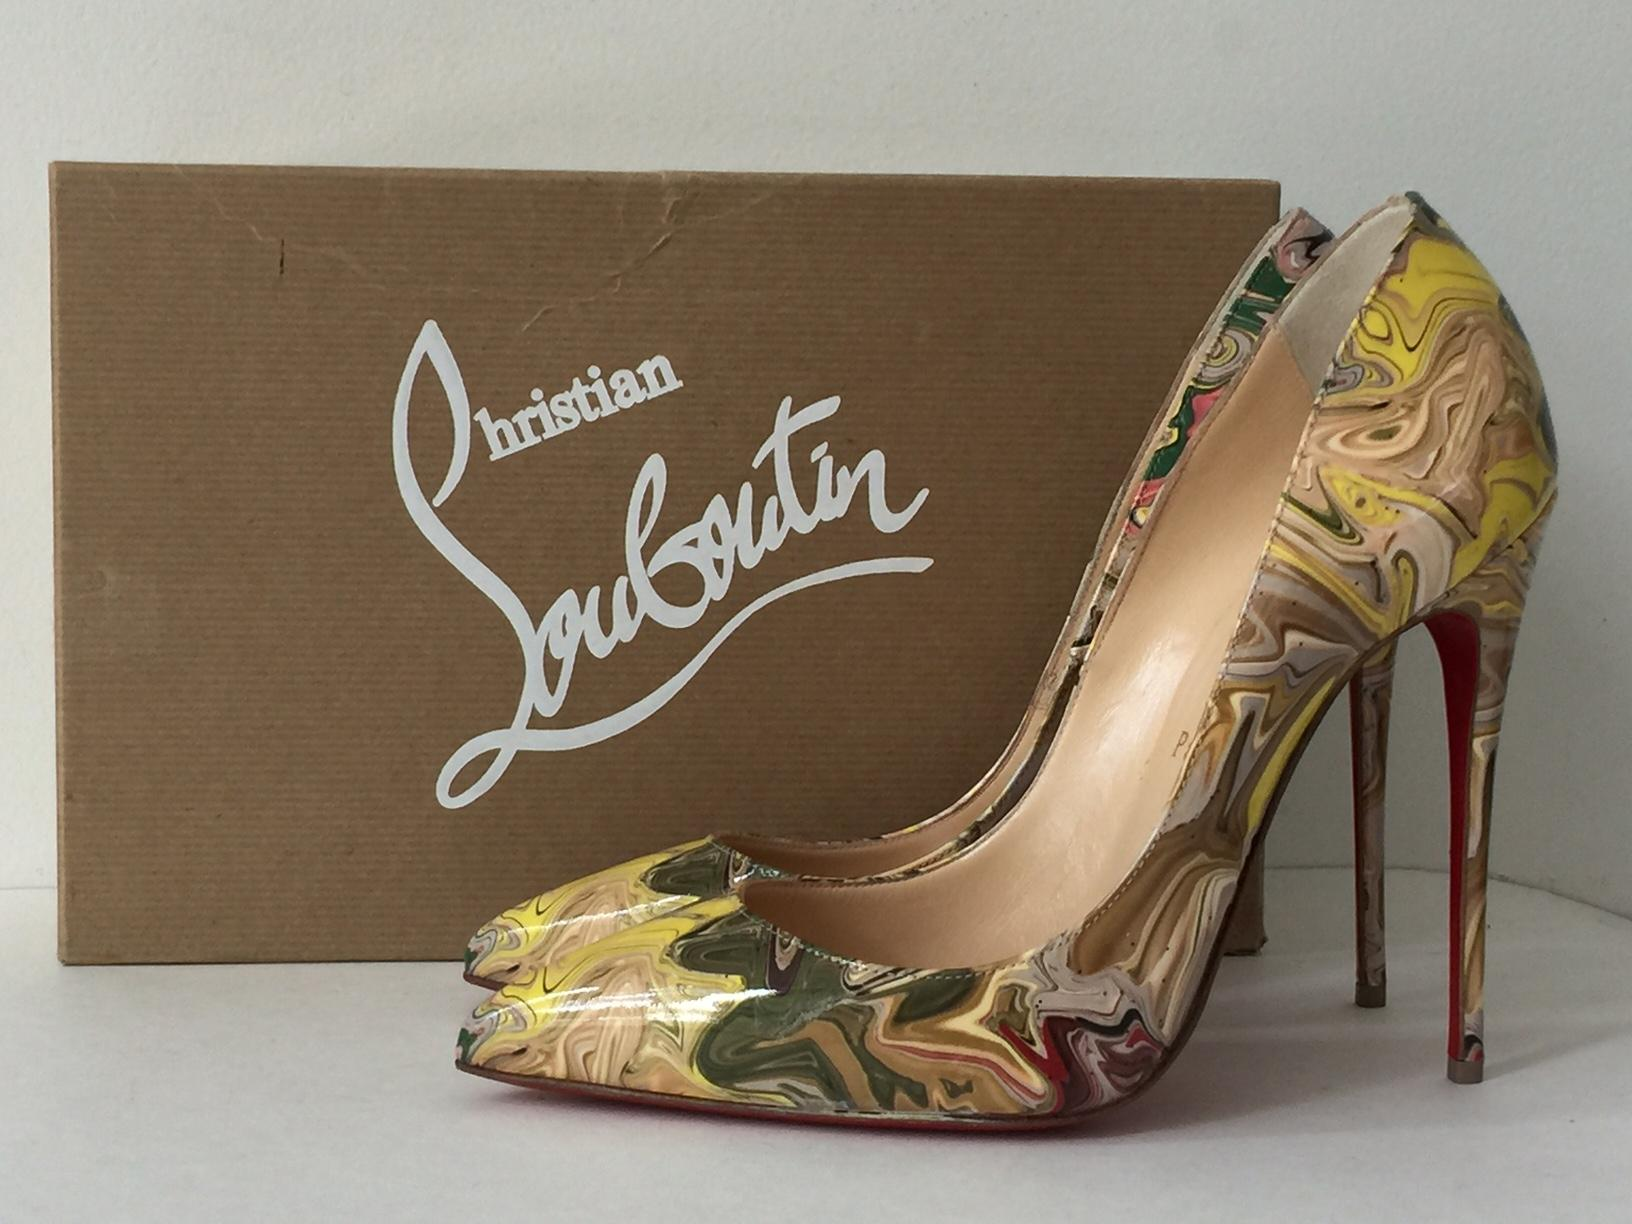 6563ee7af461 ... Christian Louboutin Nude So Kate Multicolor Marble Marble Marble Apt  Yellow Patent Leather Pumps Size US ...